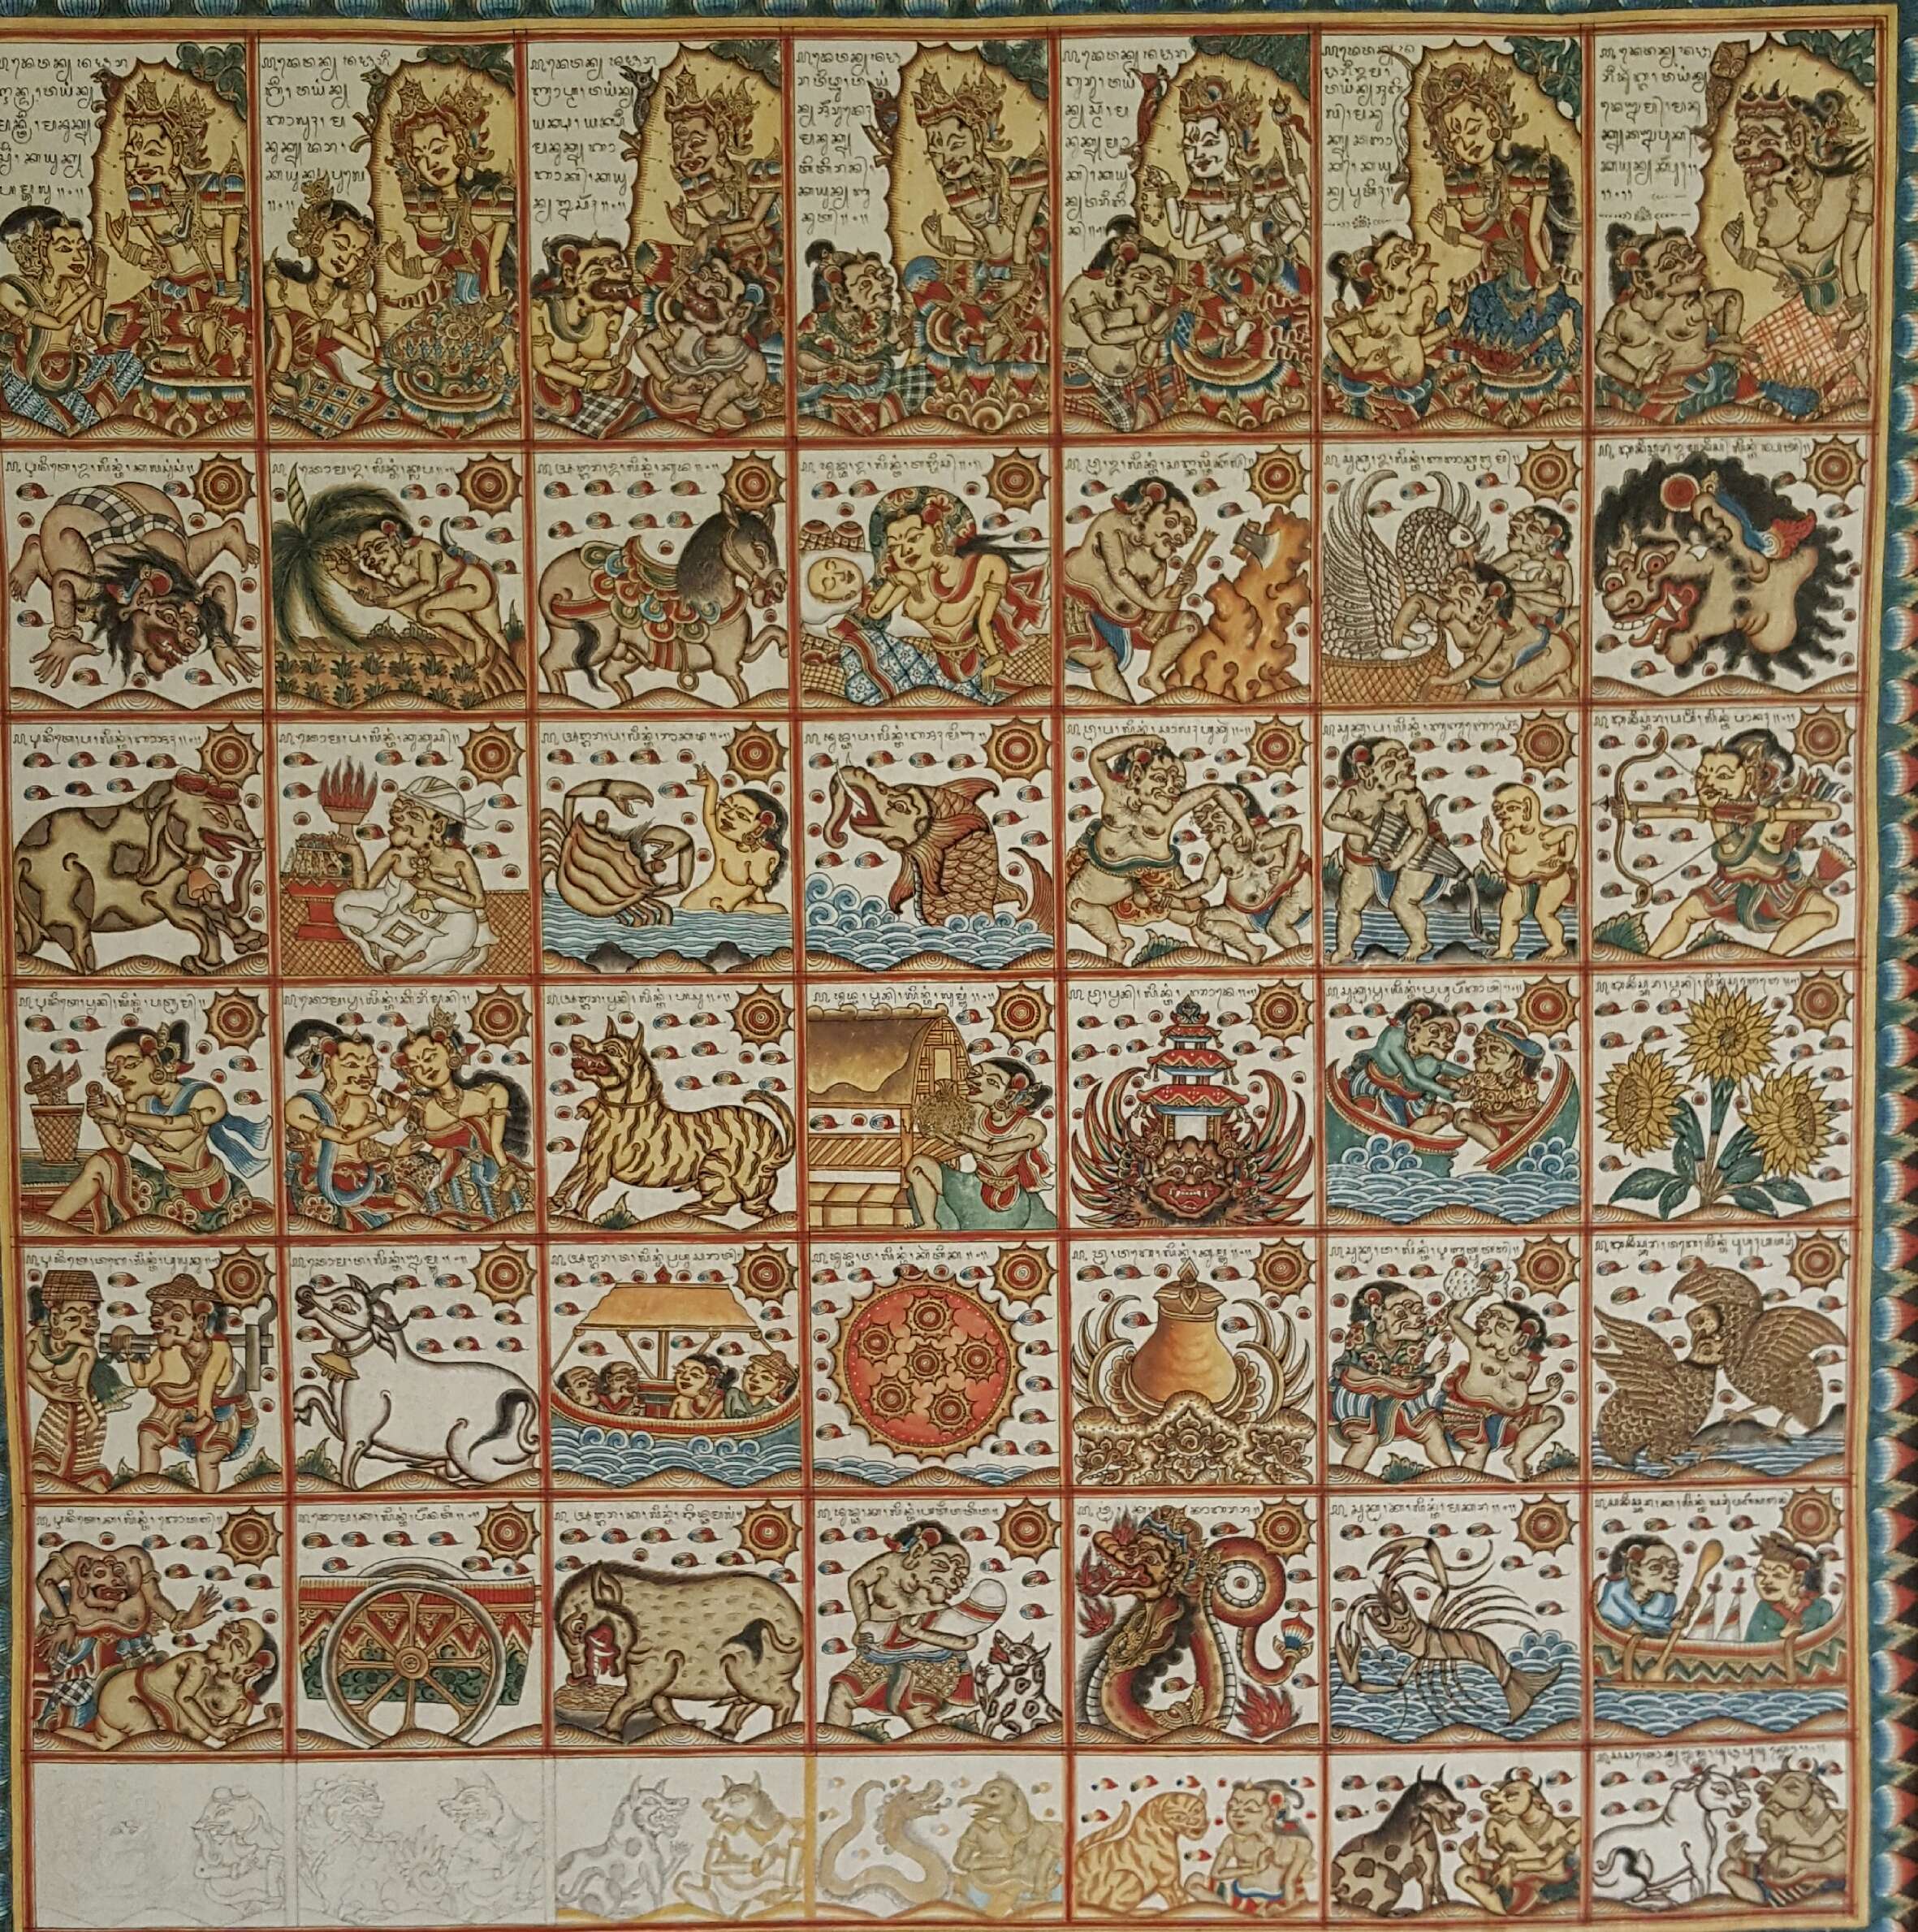 Palalintangan Astrological Chart - Natural Pigments on Cloth